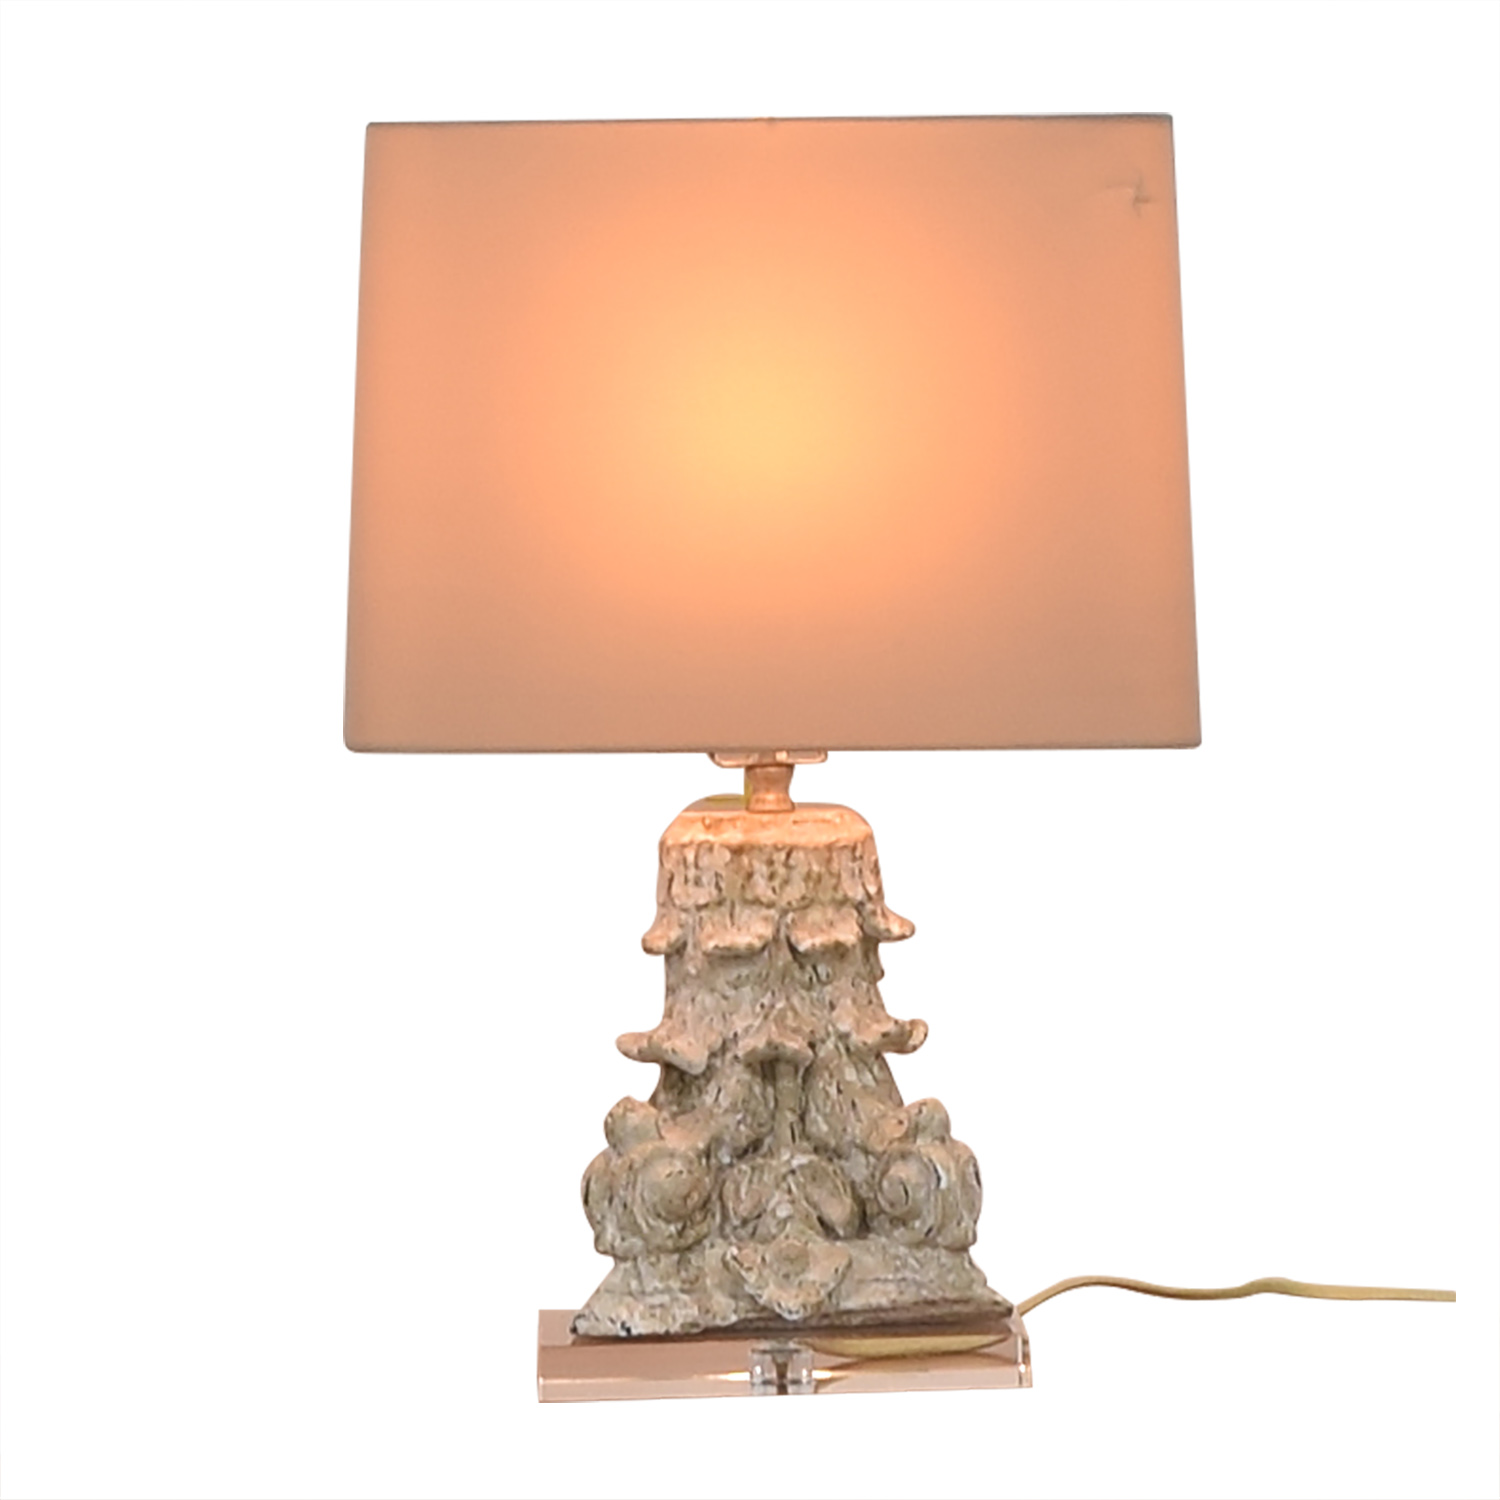 Elegant Table Lamp second hand